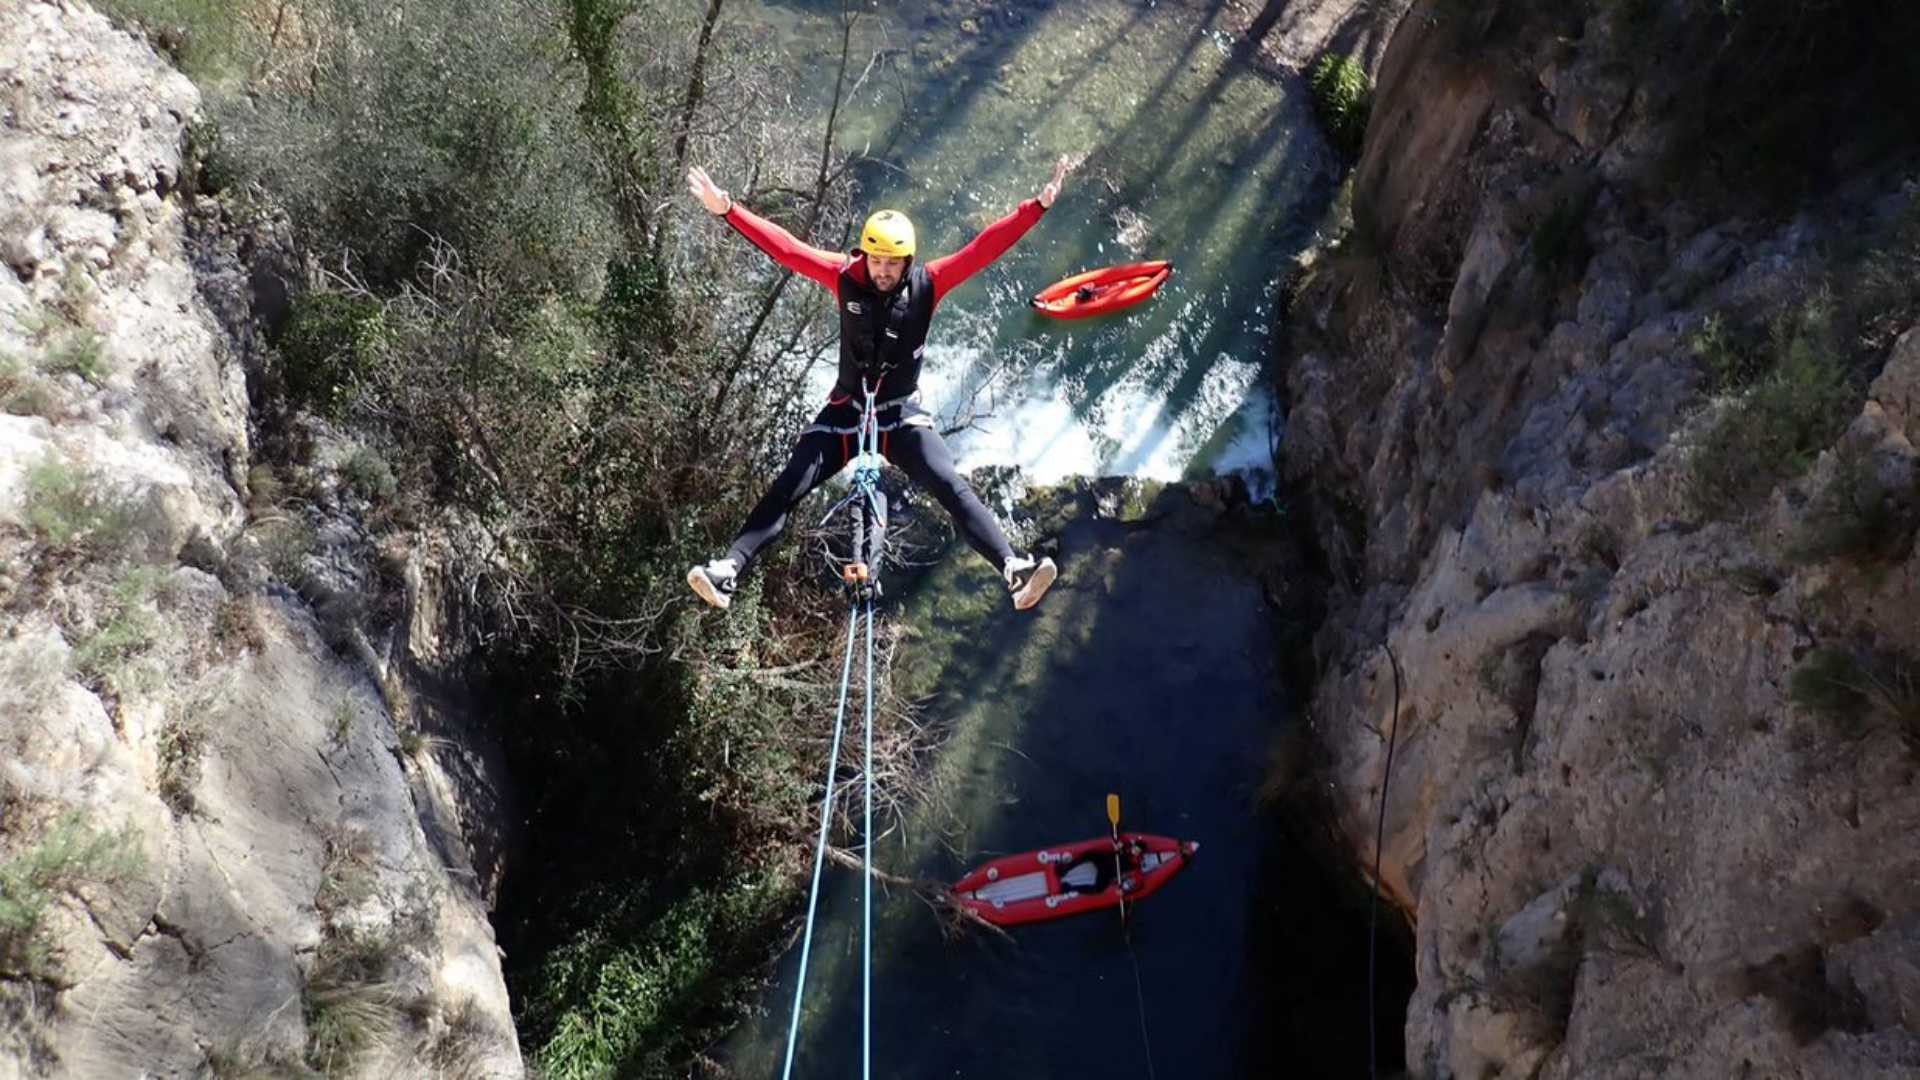 Bungee jumping in Calles